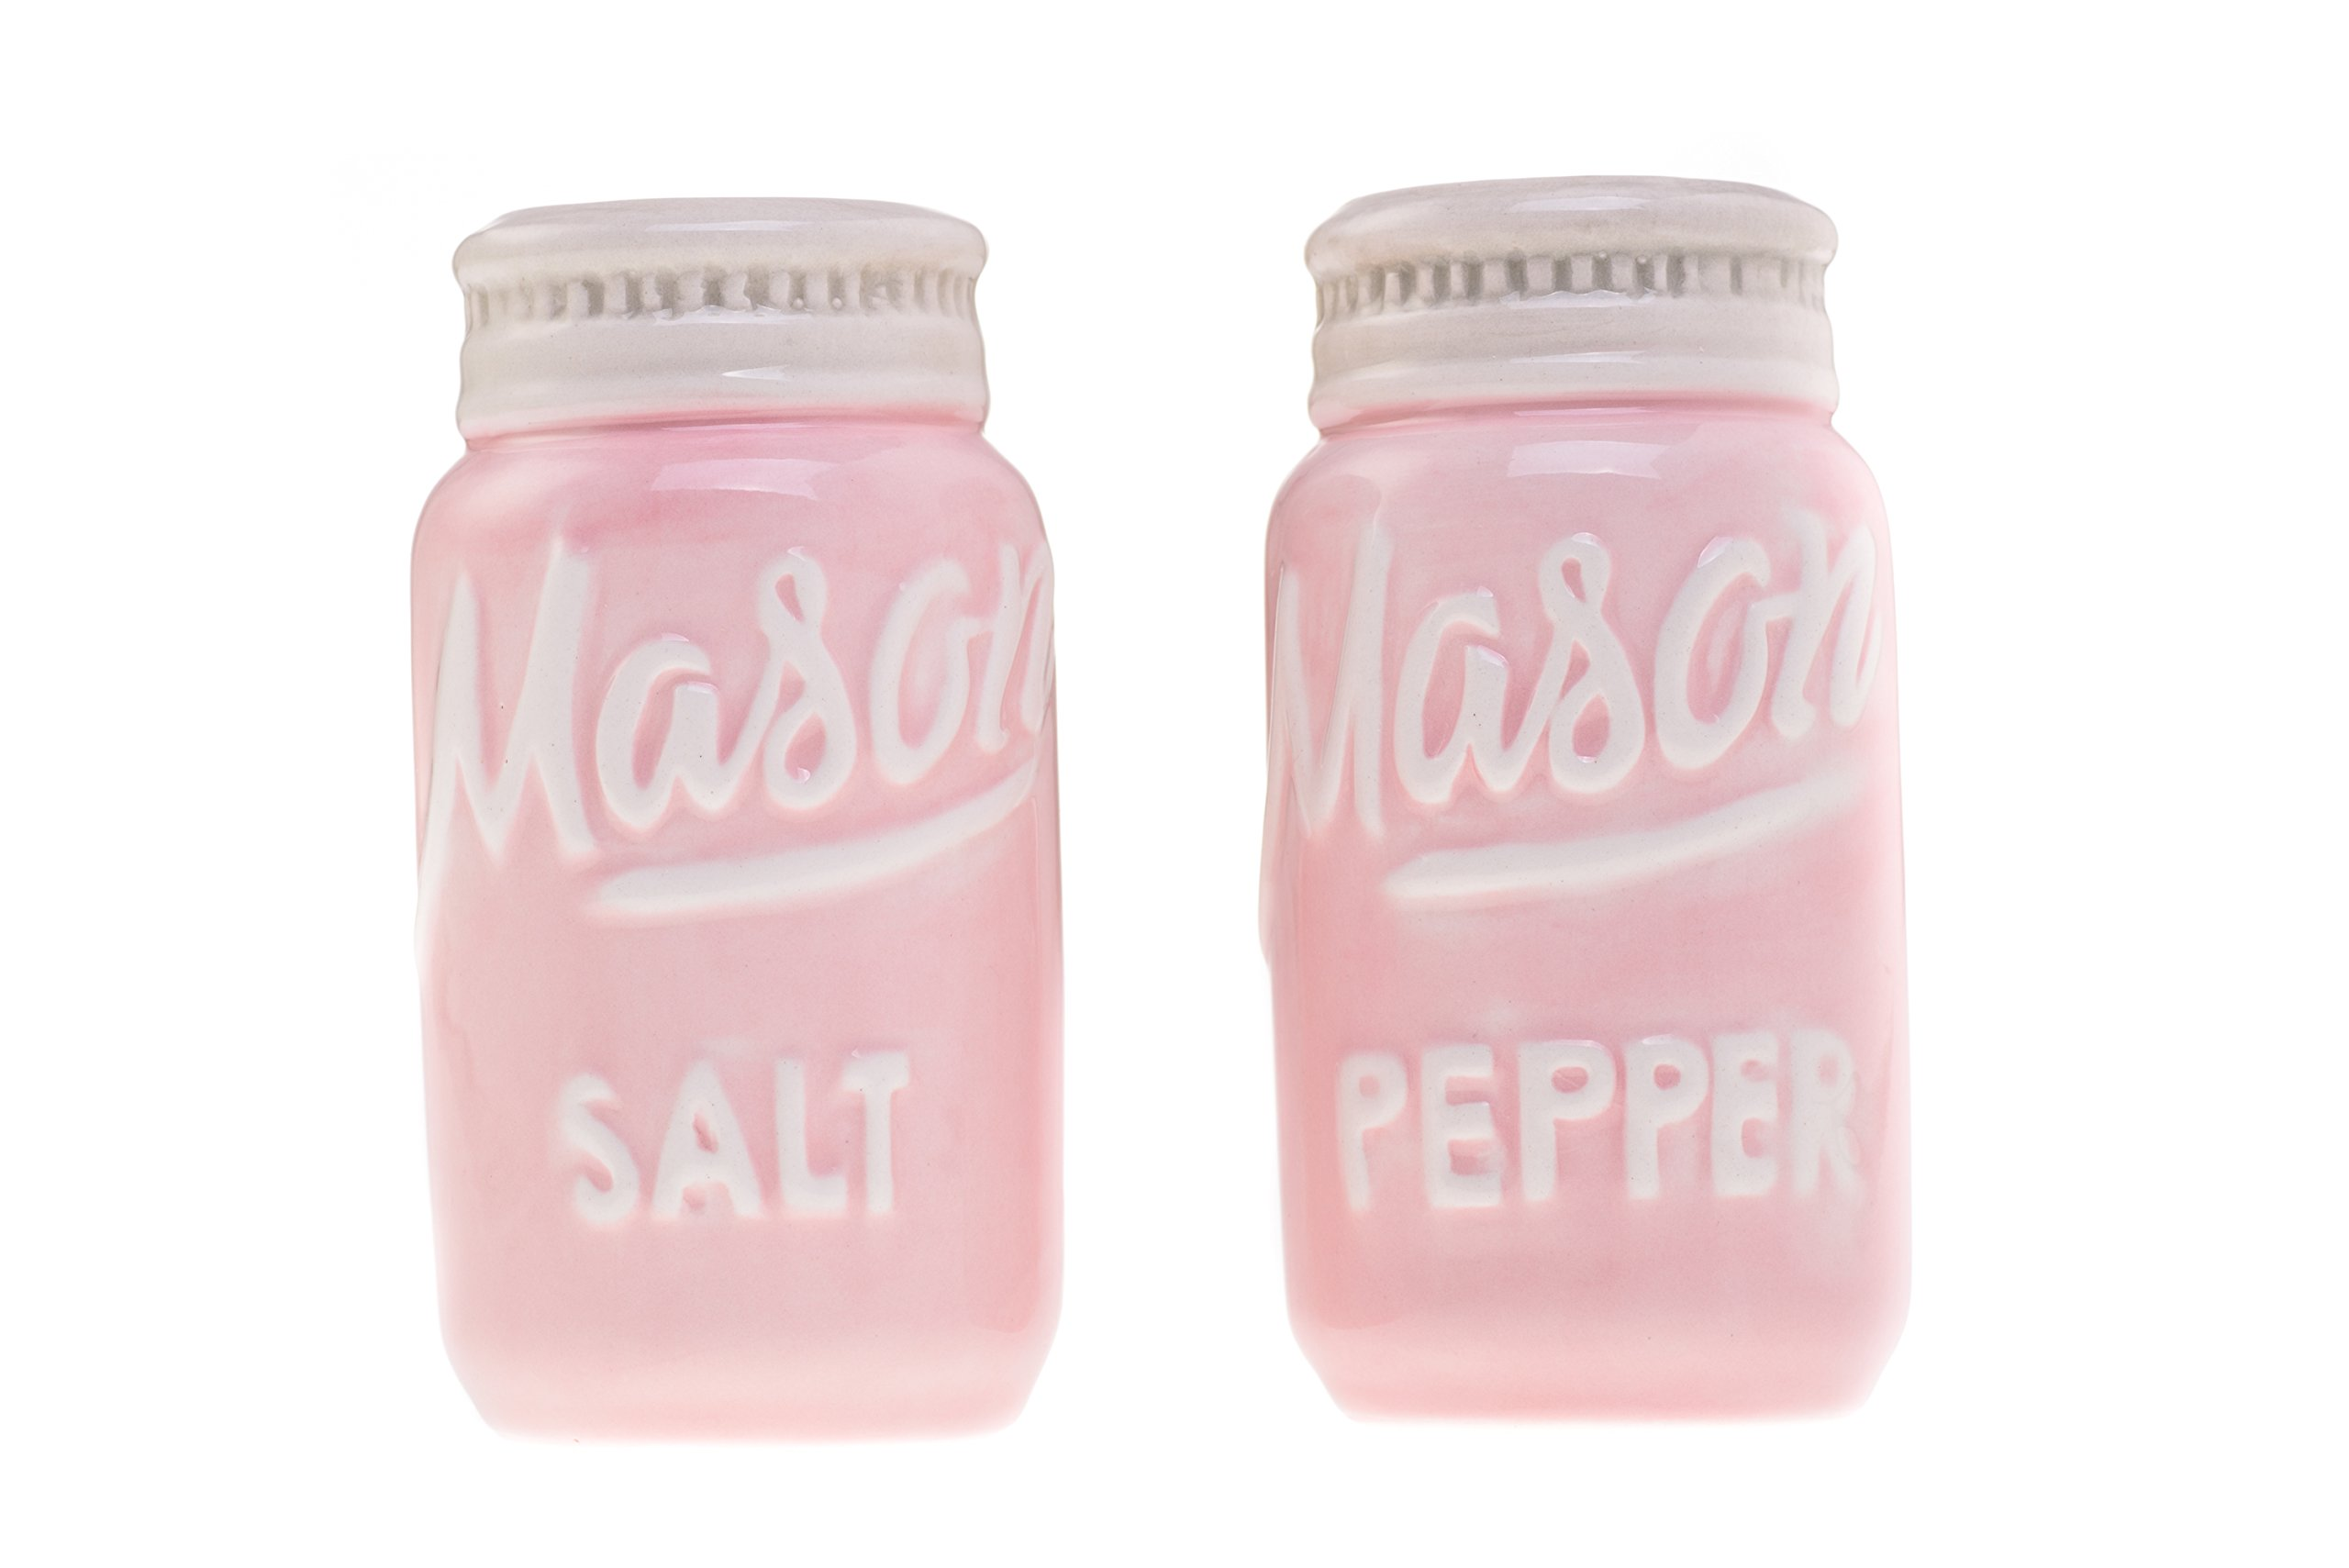 Pink Mason Jars Salt & Pepper Shakers - Kitchen Ceramic Shakers   Retro & Farmhouse Decor   Dishwasher & Microwave Safe   Set of 2   Baking Supplies  Rustic Home Accessory & Gifts by Goodscious